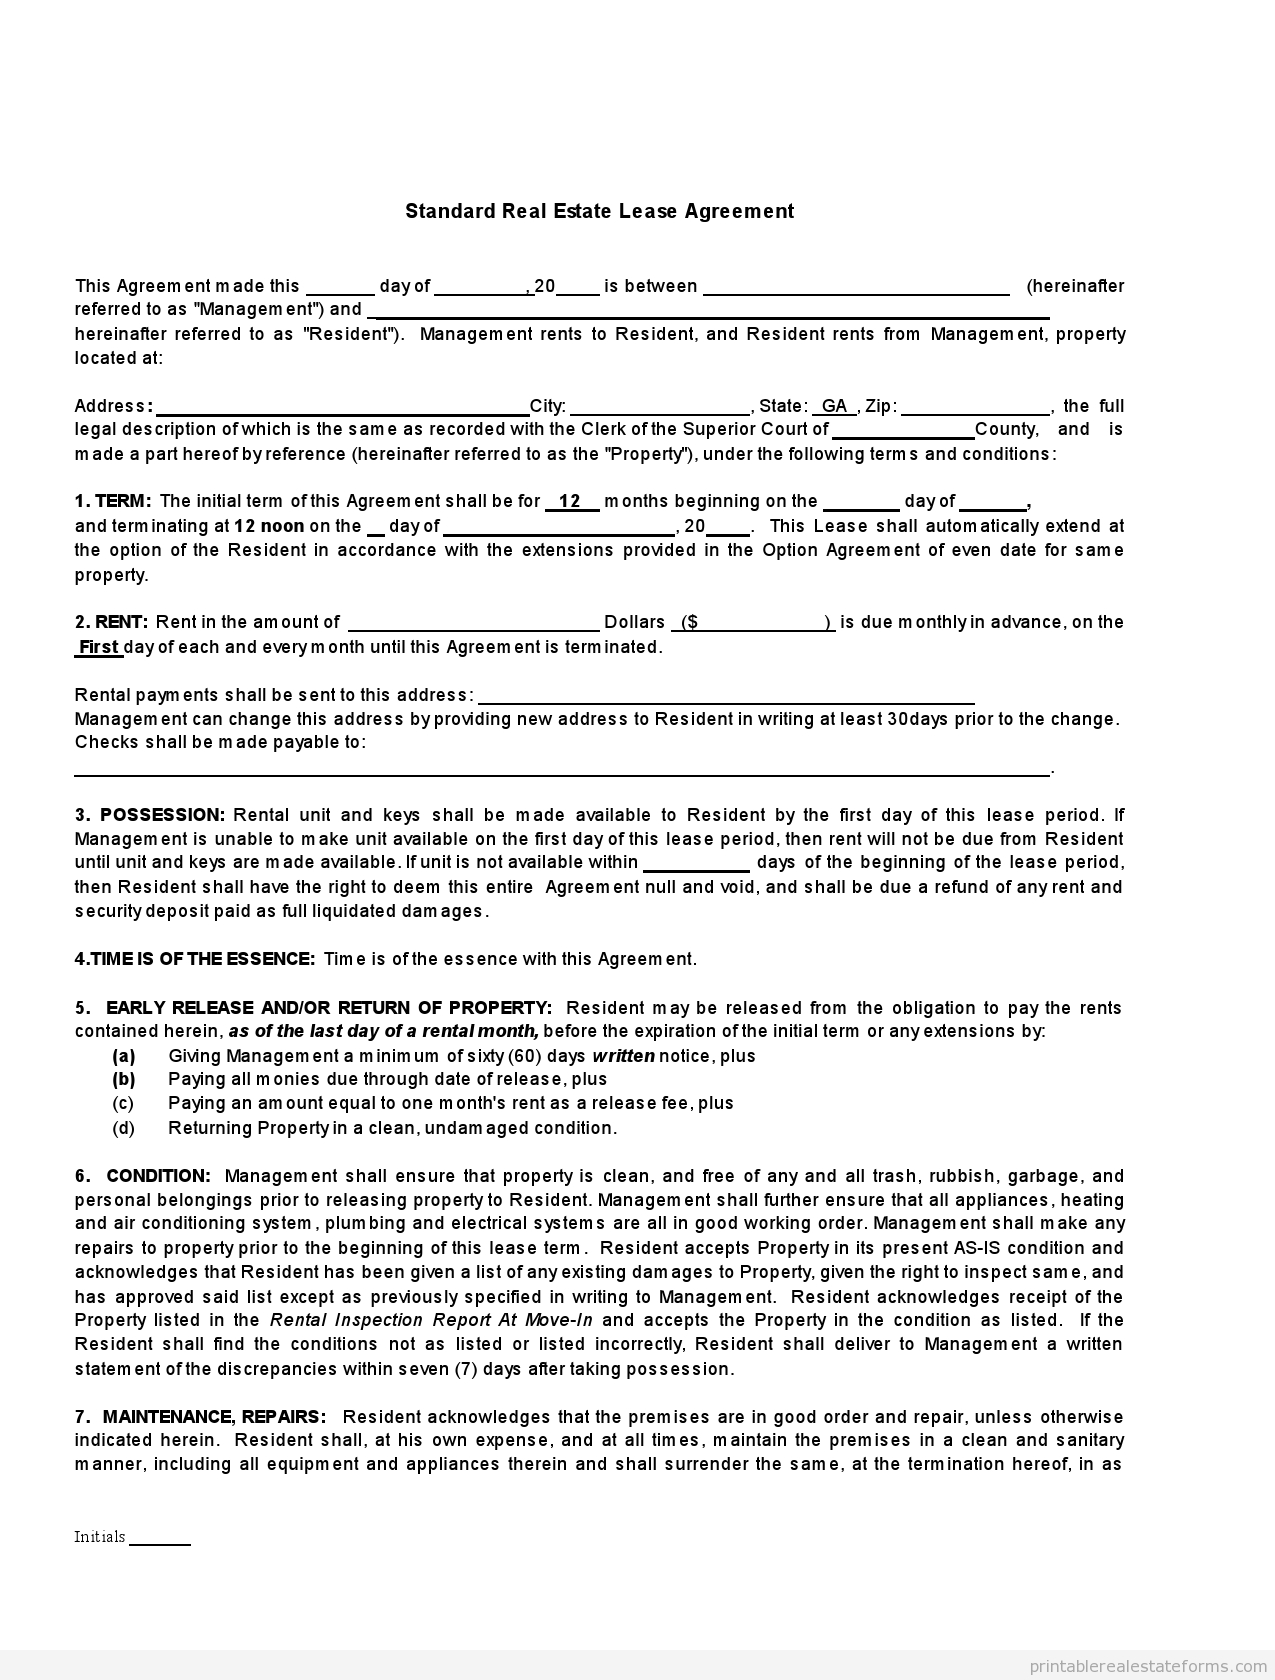 Free printable rental lease agreements form template for Standard tenancy agreement template